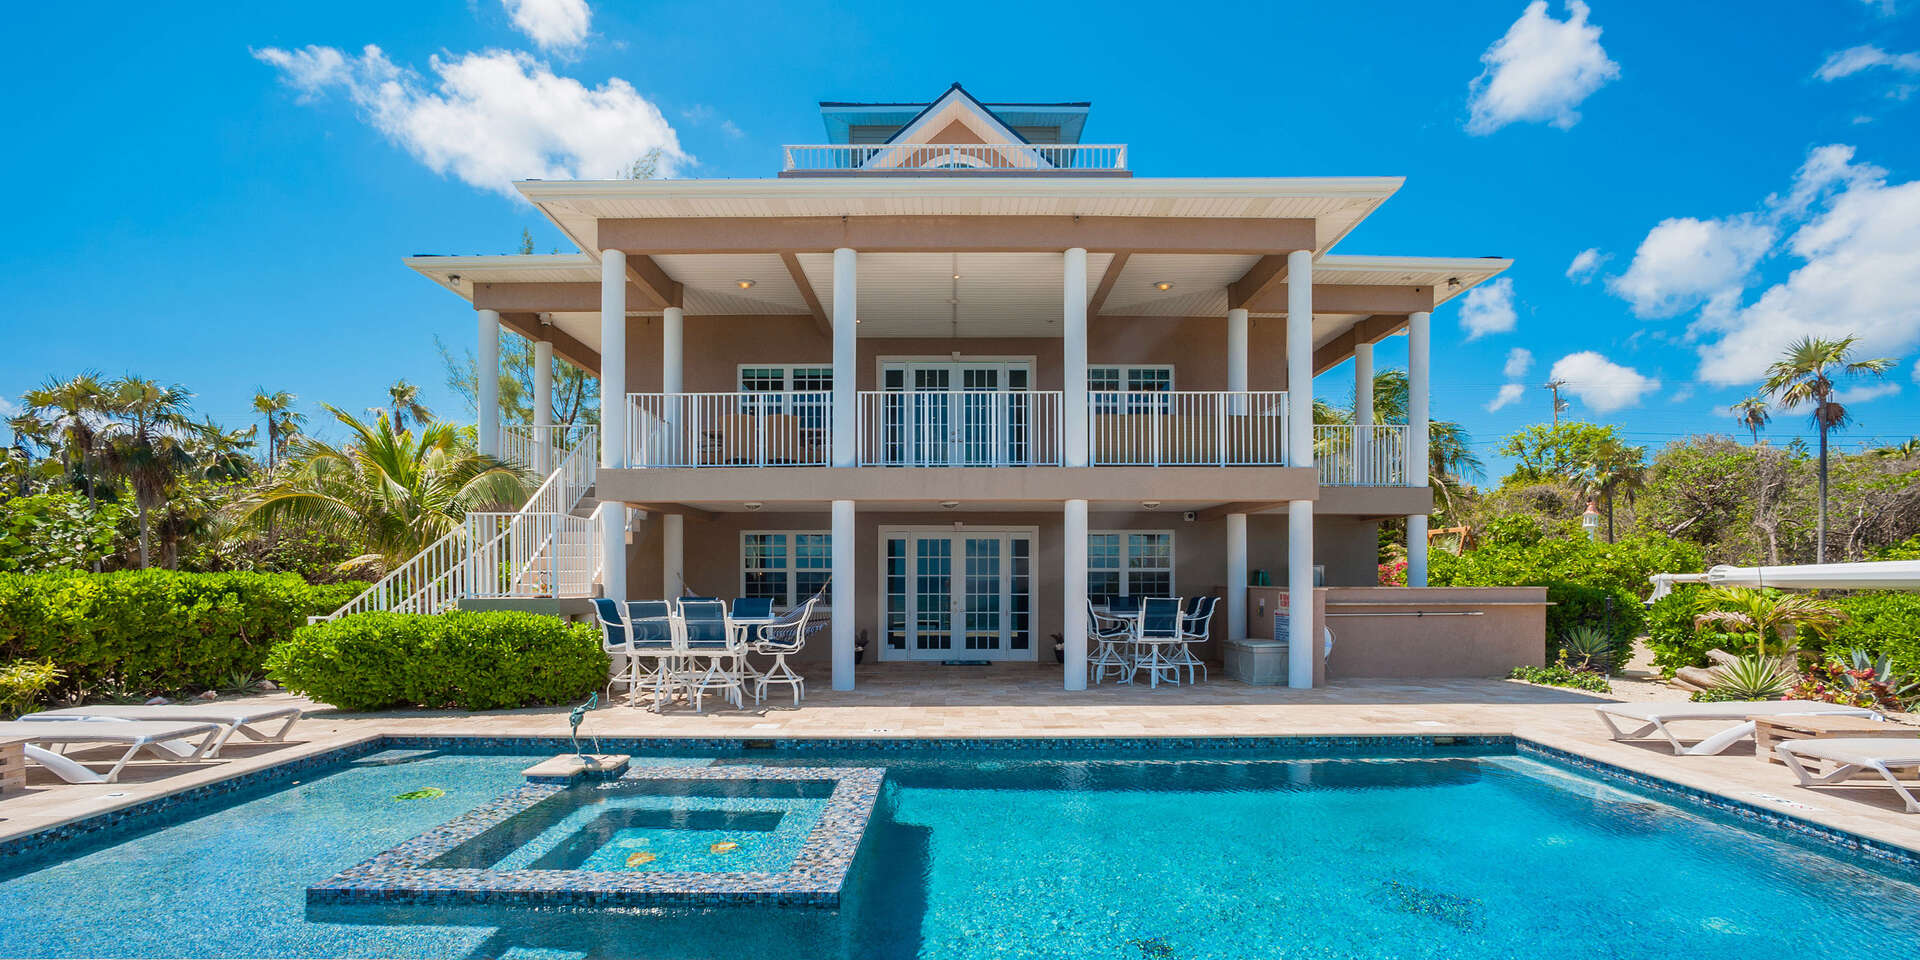 - Our Cayman Cottage - Image 1/35